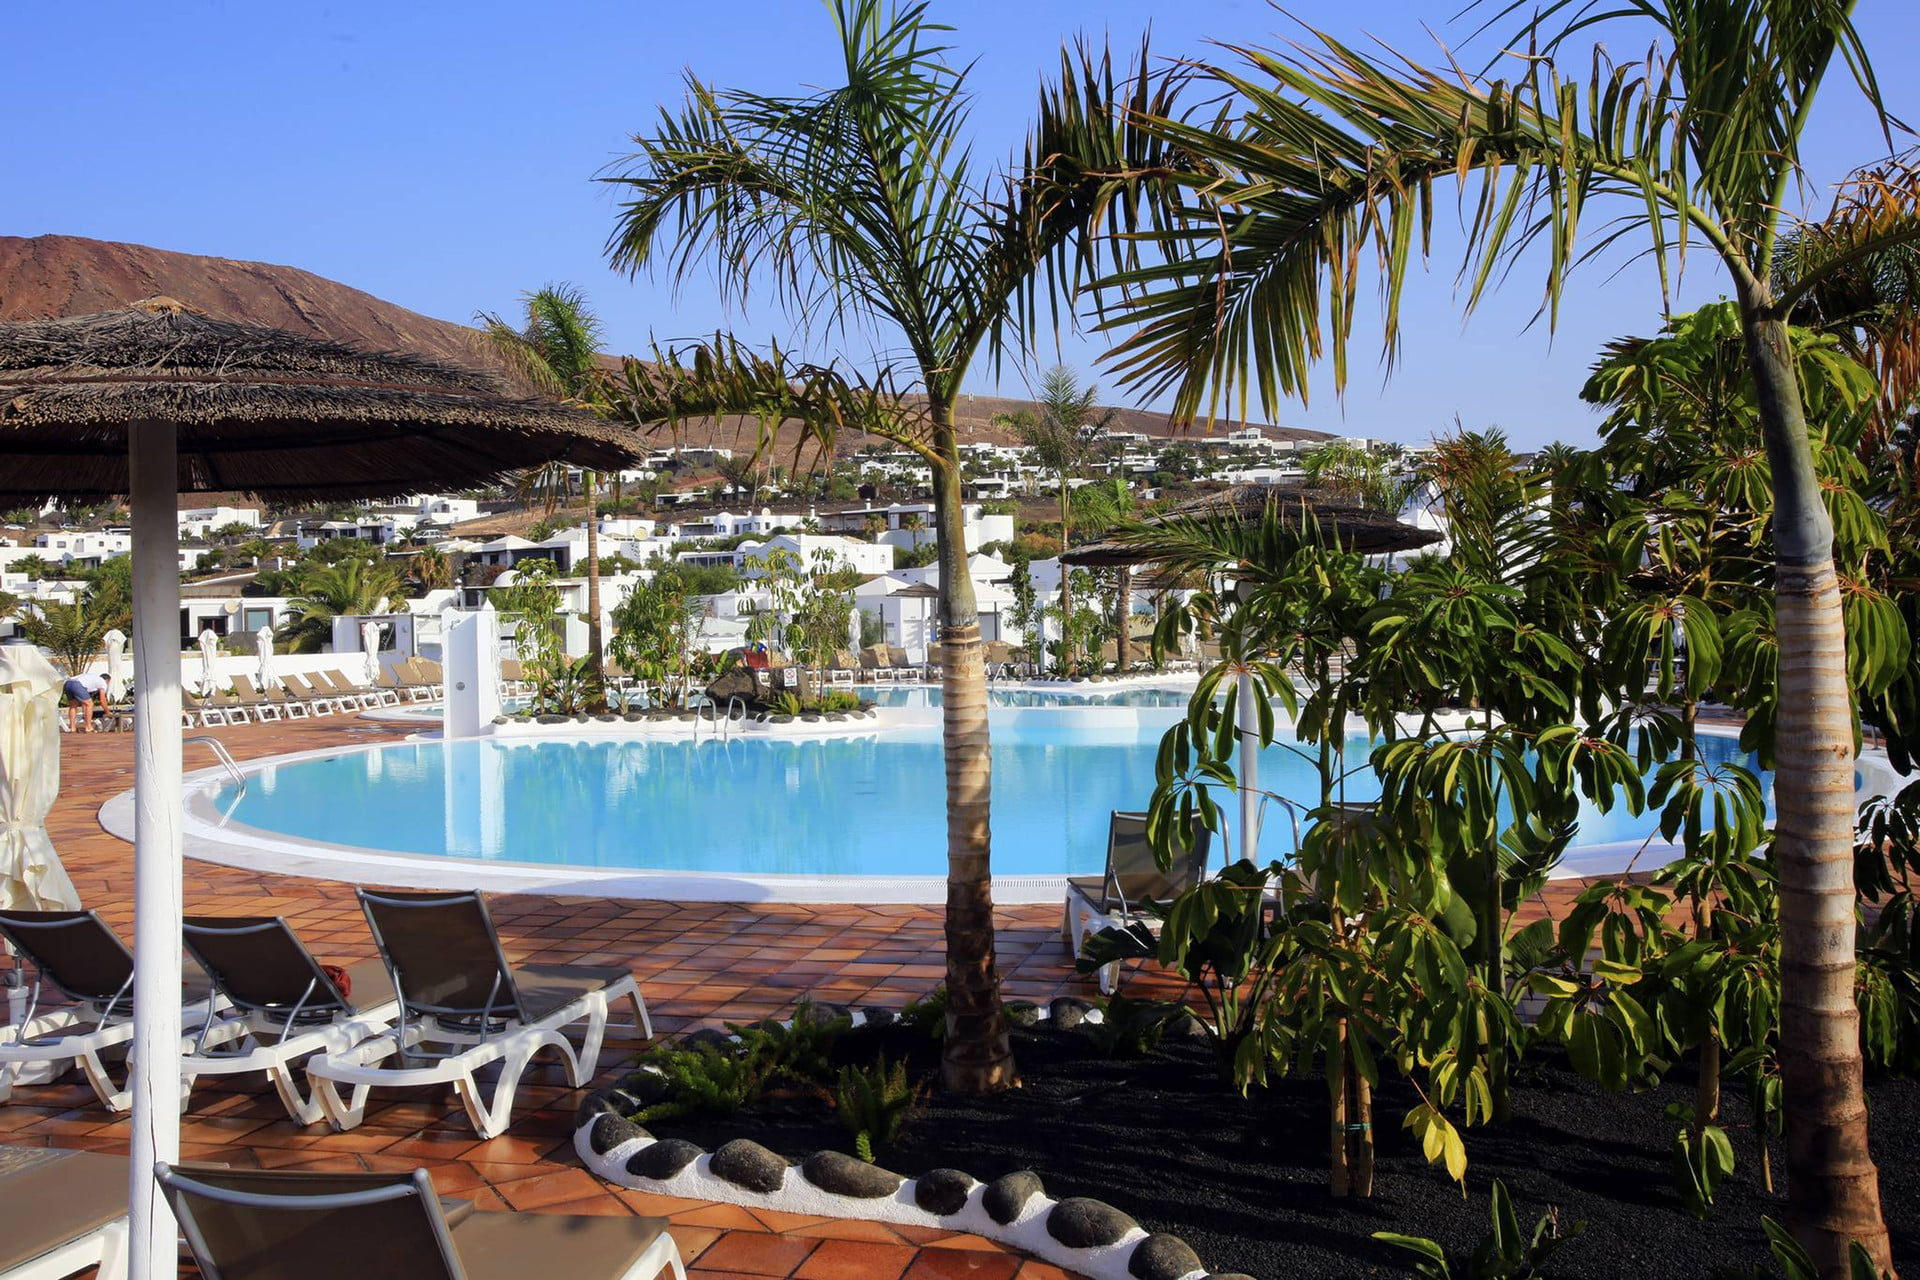 Swimming Pool at the Labranda Alyssa Suite Hotel in Playa Blanca, Lanzarote